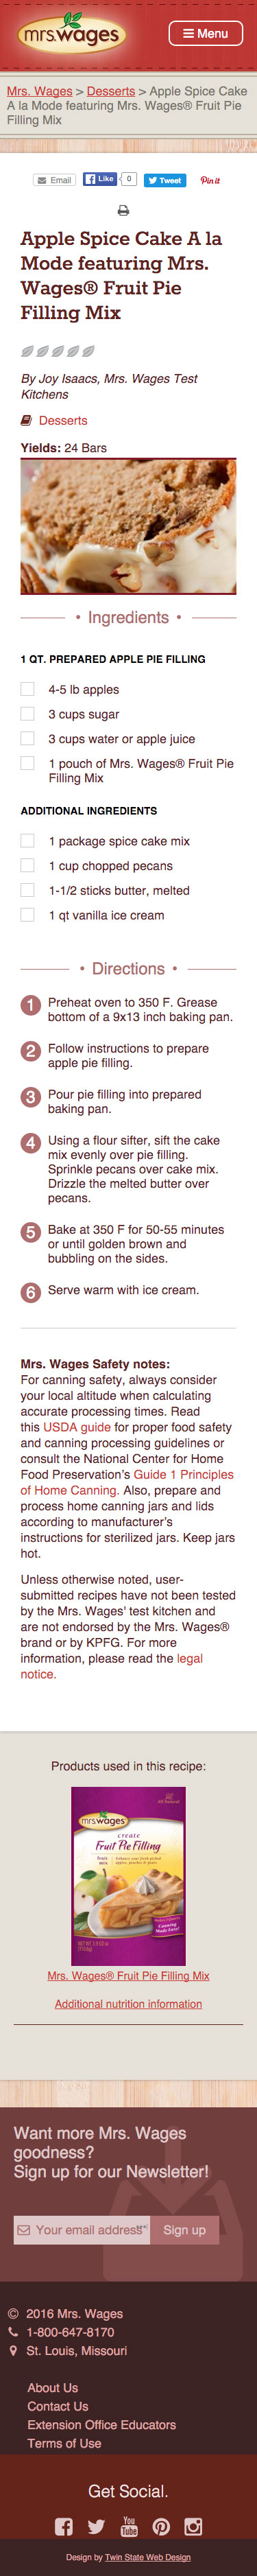 Mrs. Wages Mobile recipe page Screen shot